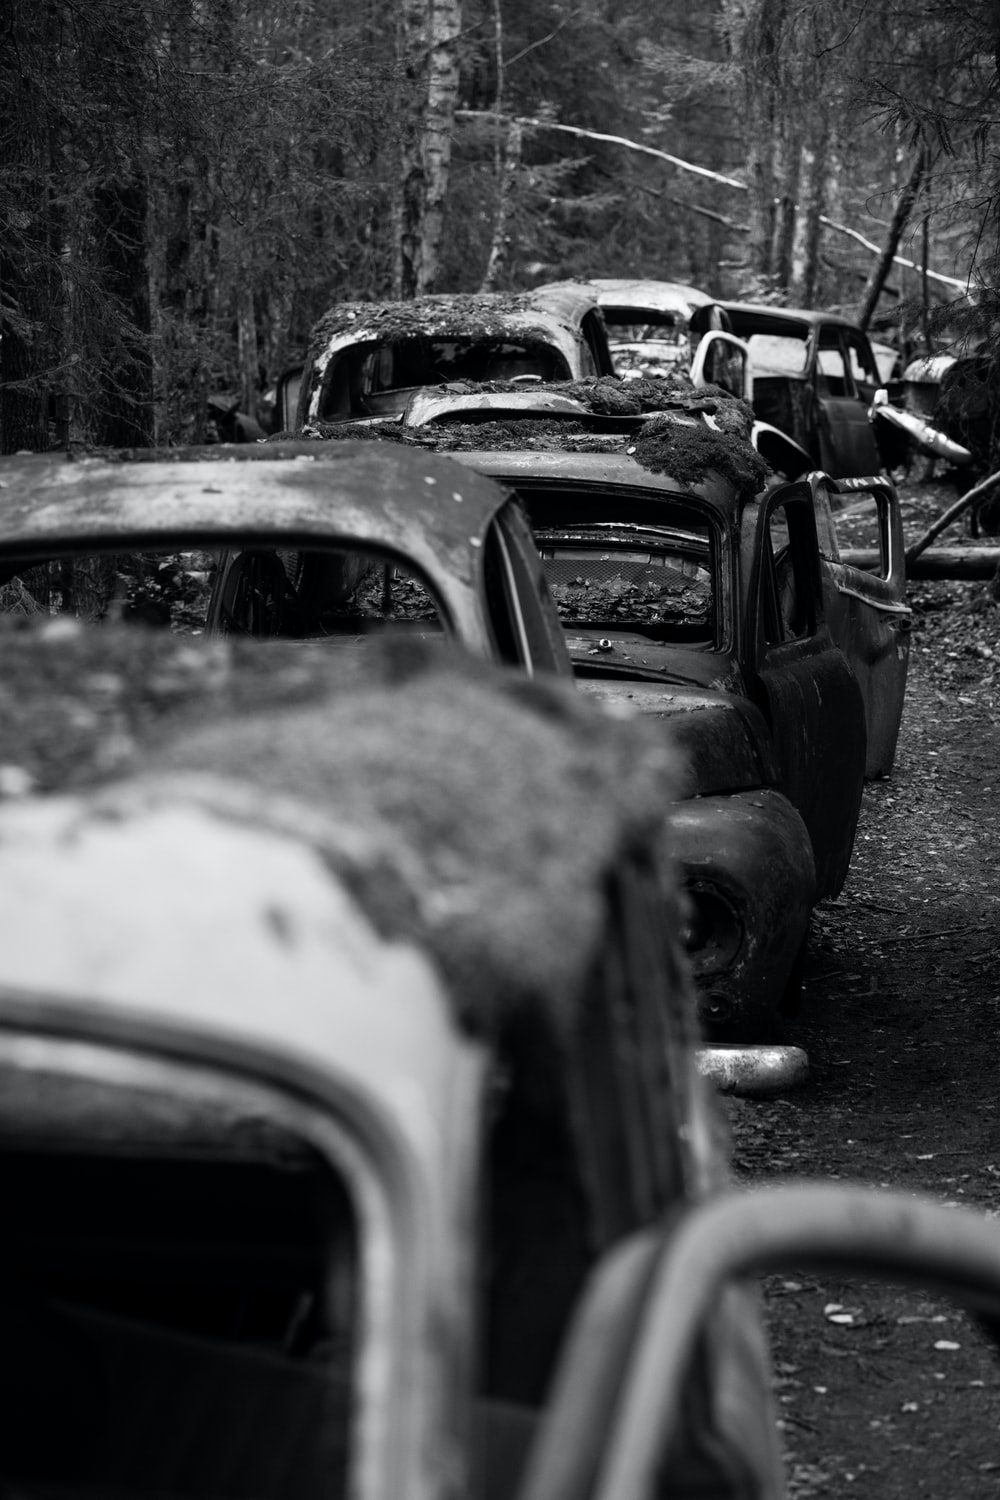 grayscale photography of wreck cars